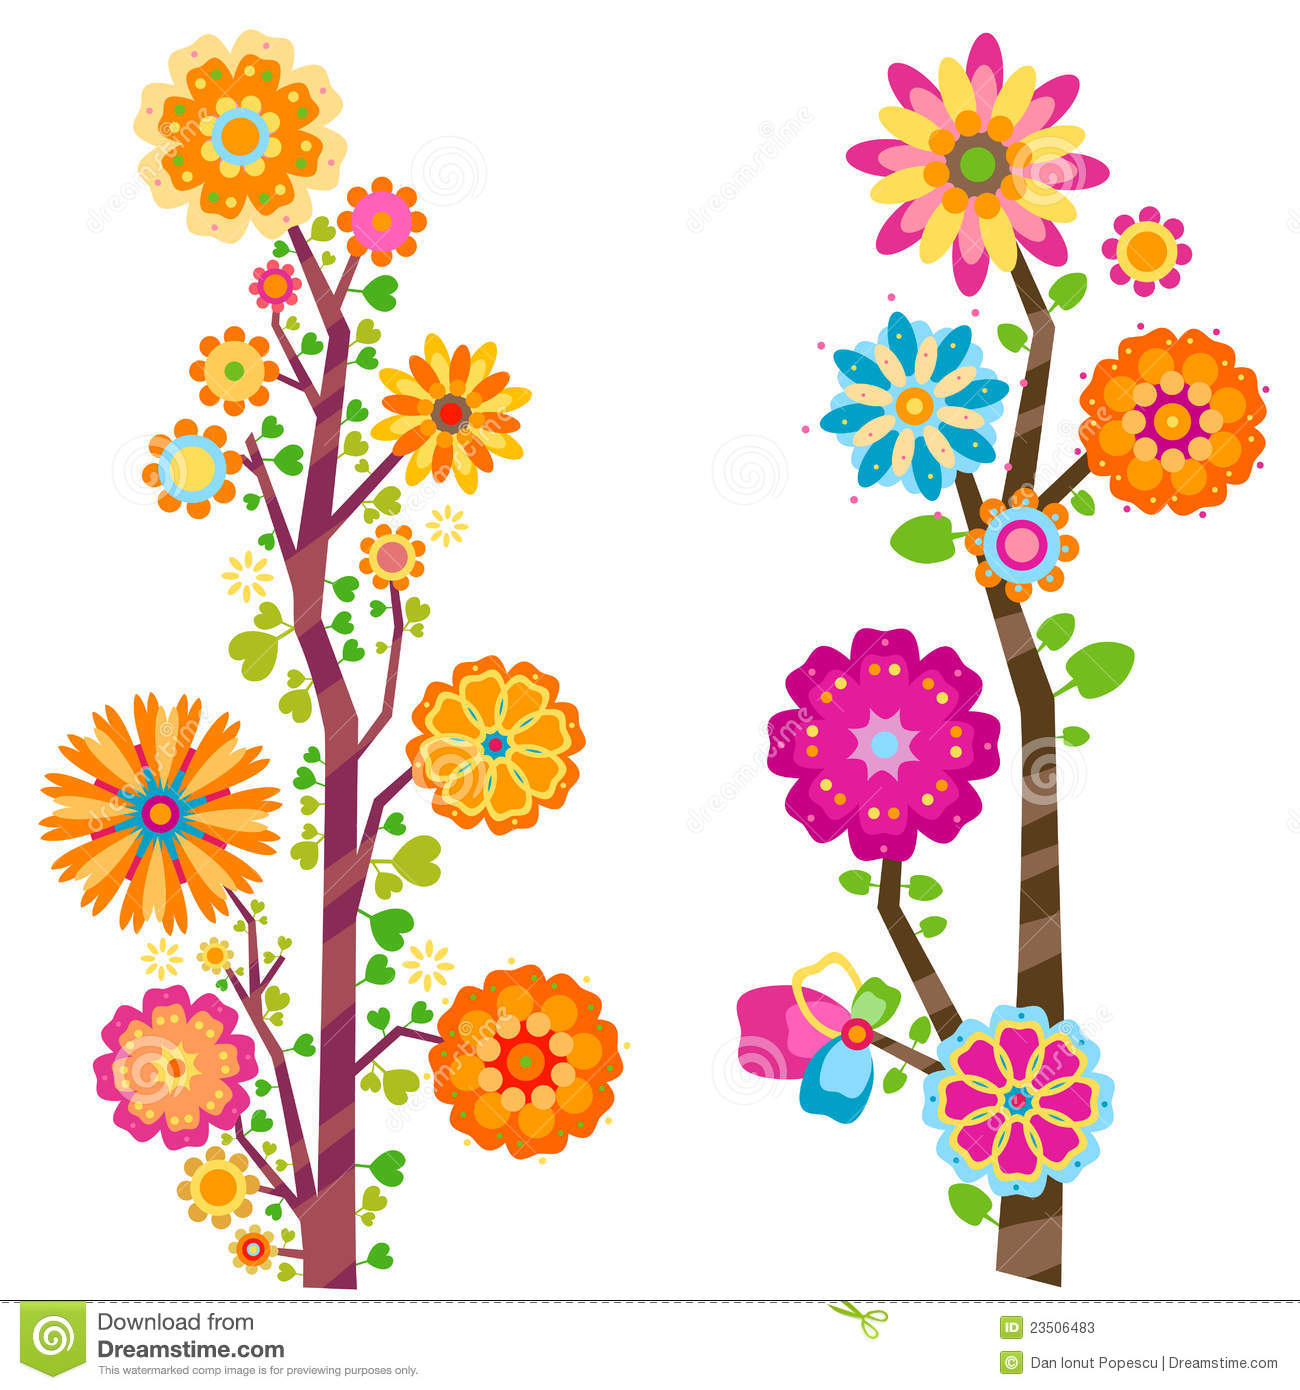 clipart trees and flowers - photo #16